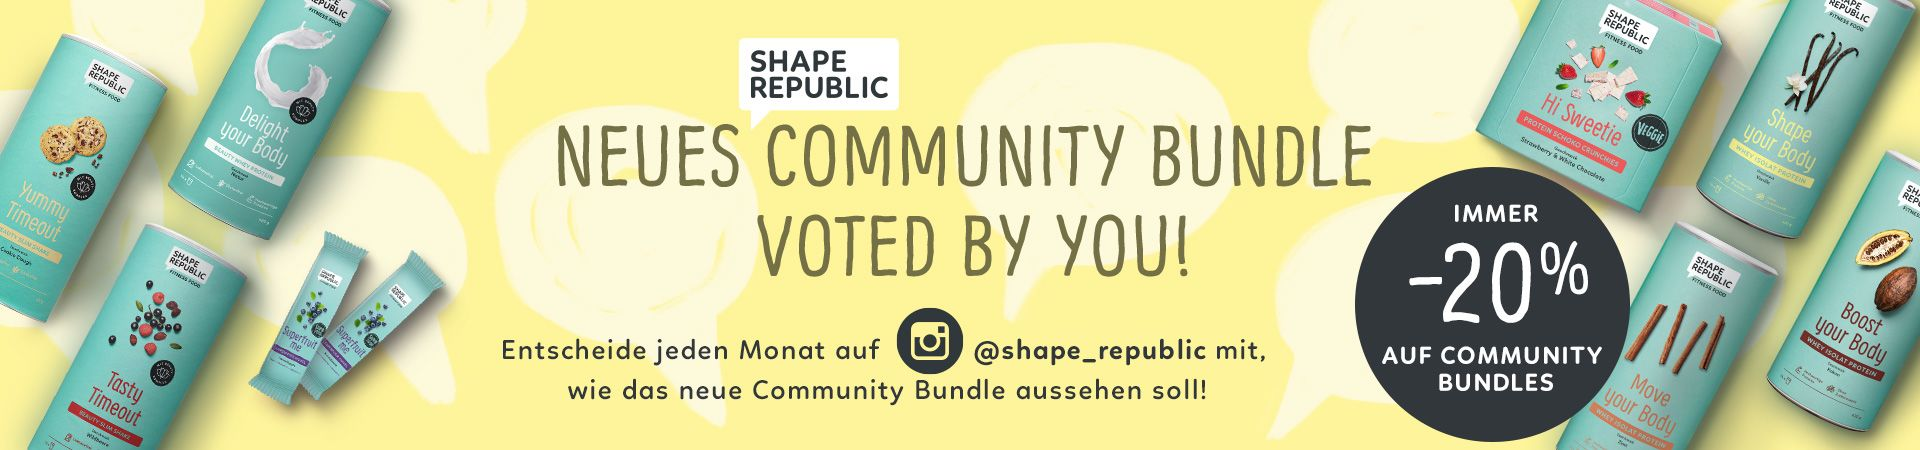 Neues Community-Bundle voted by you!